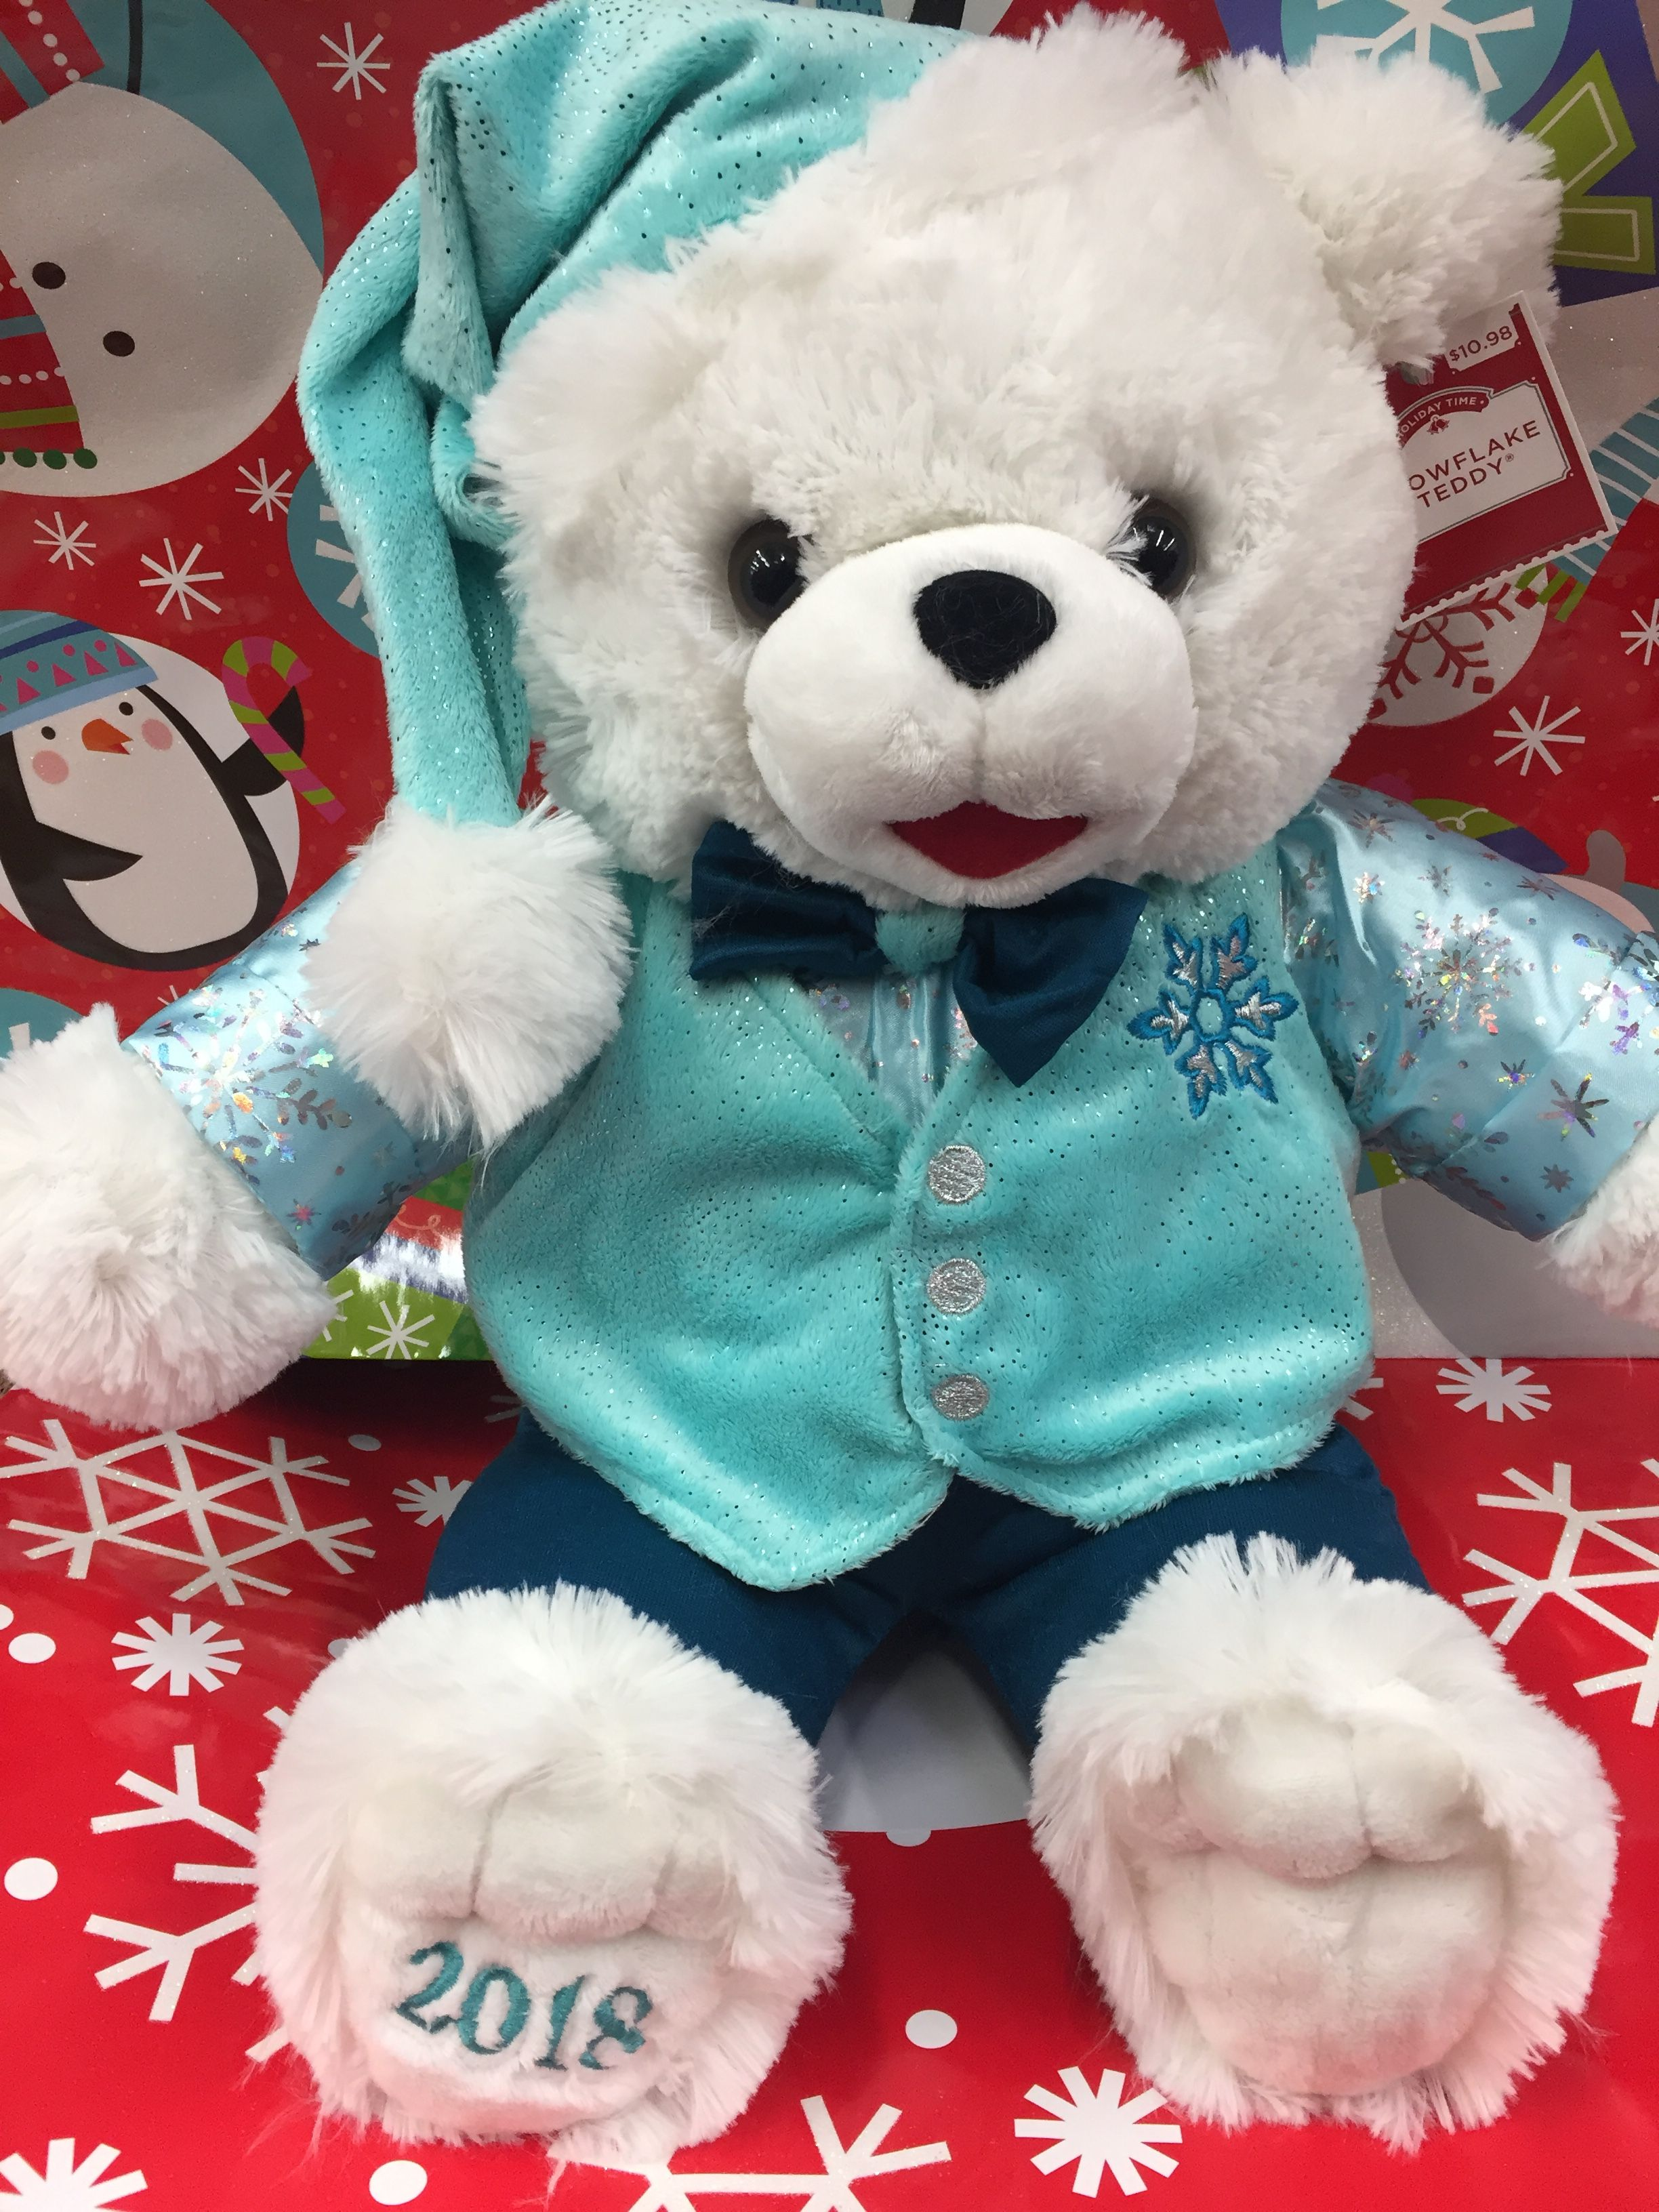 2018 DanDee Walmart Snowflake Teddy Hello kitty plush